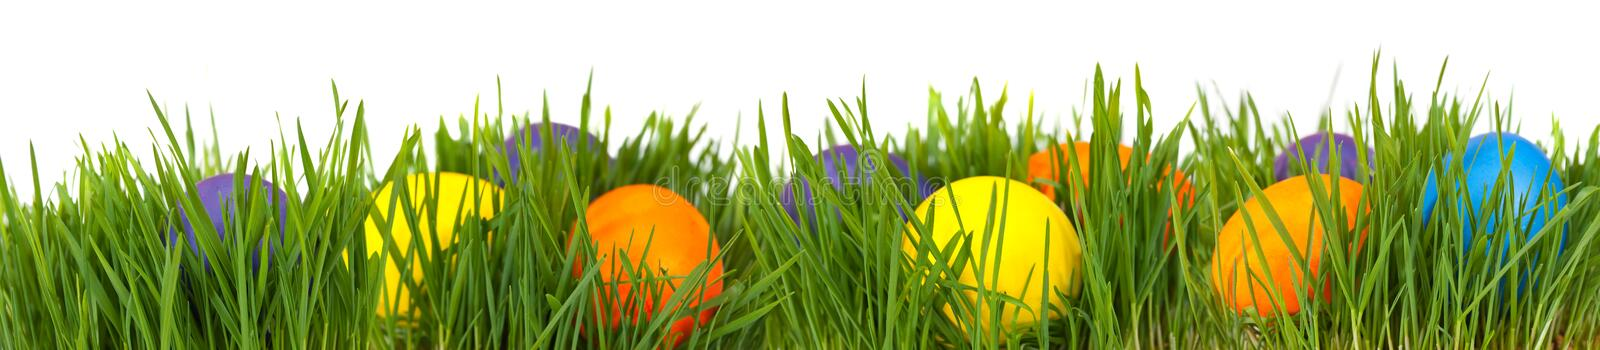 Easter border. Easter eggs in green grass over white background royalty free stock image